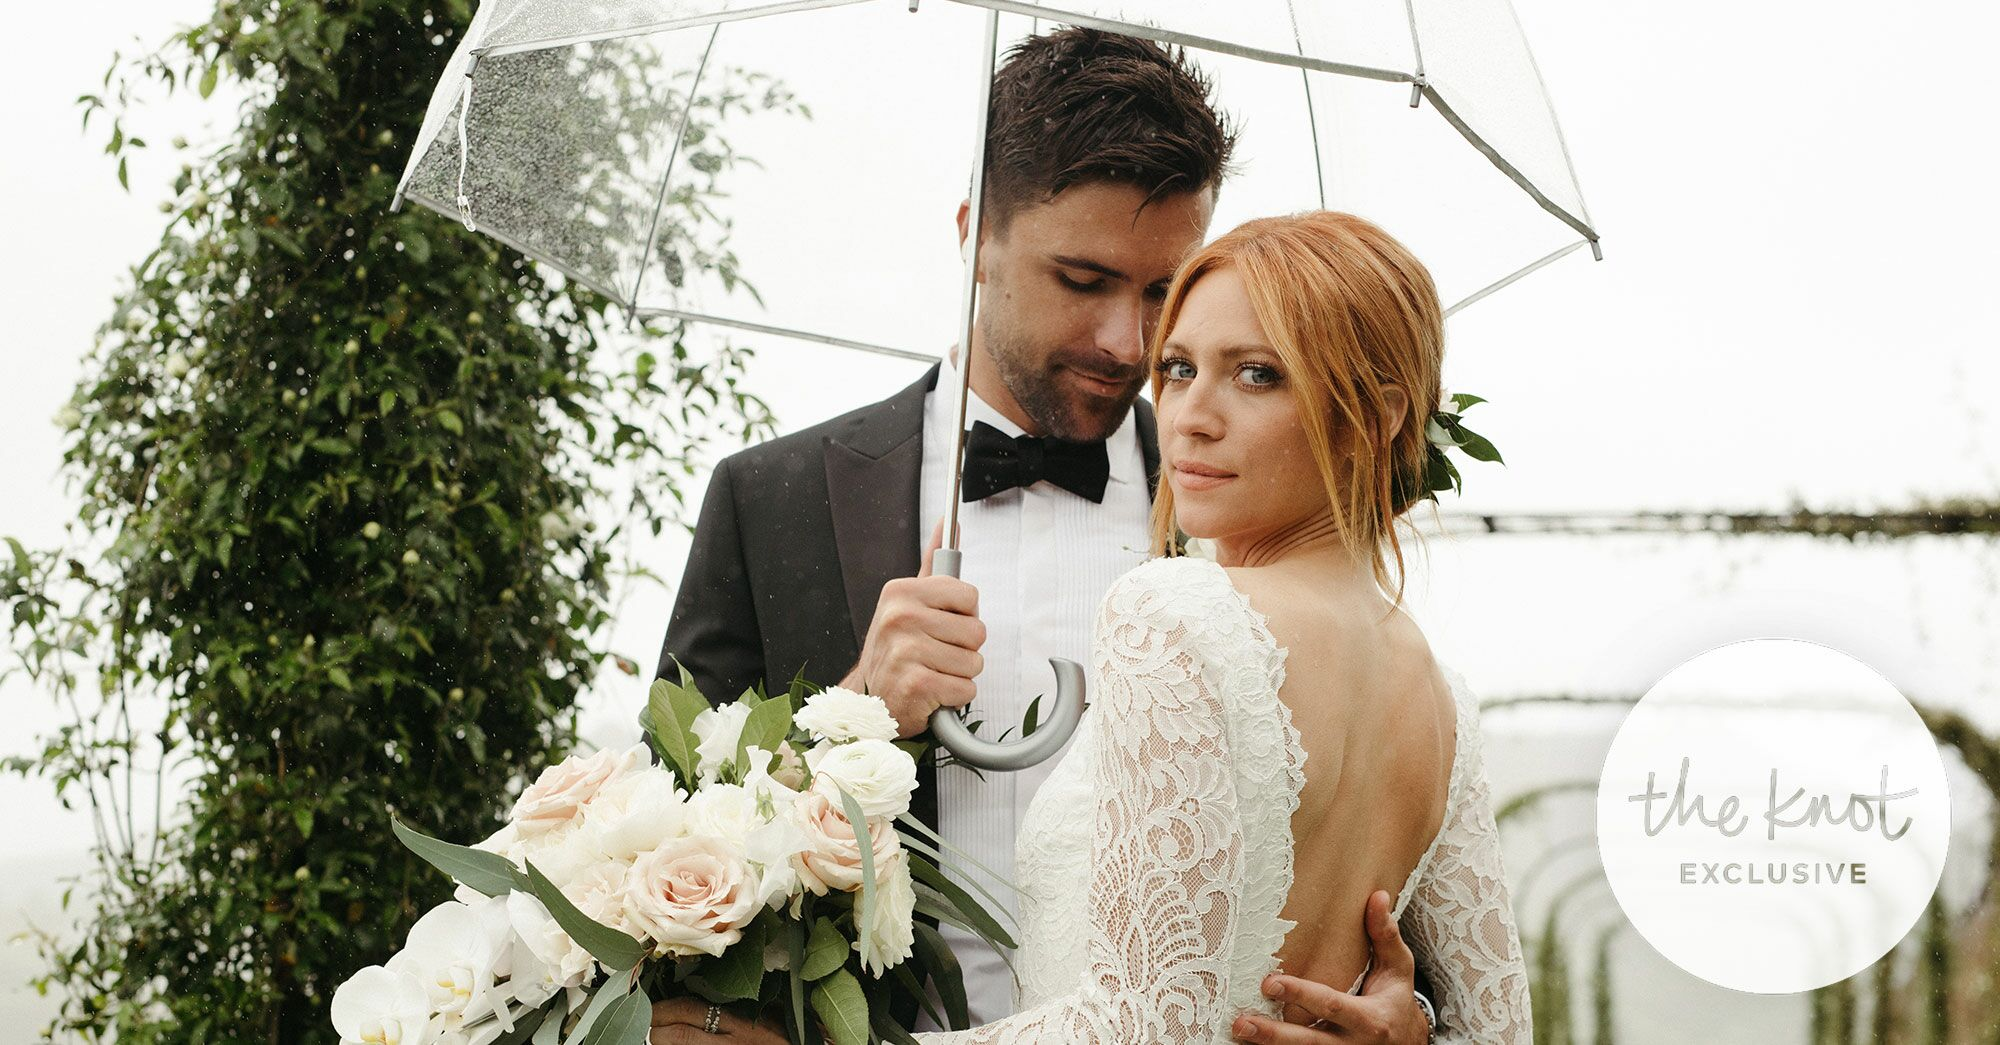 Exclusive: See Brittany Snow and Tyler Stanaland's Wedding Photos